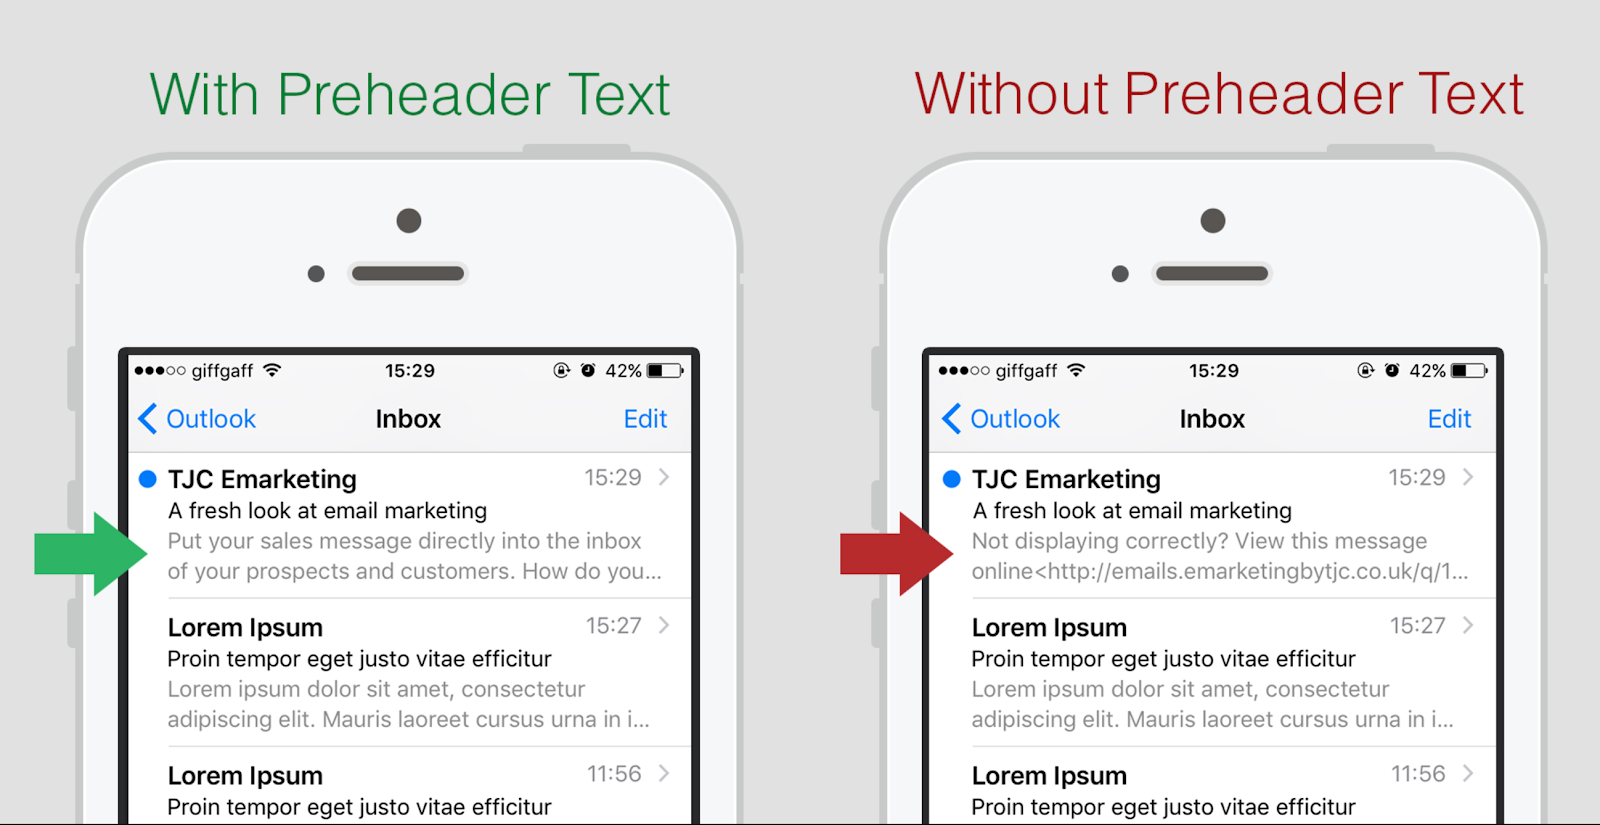 with preheader text vs. without preheader text